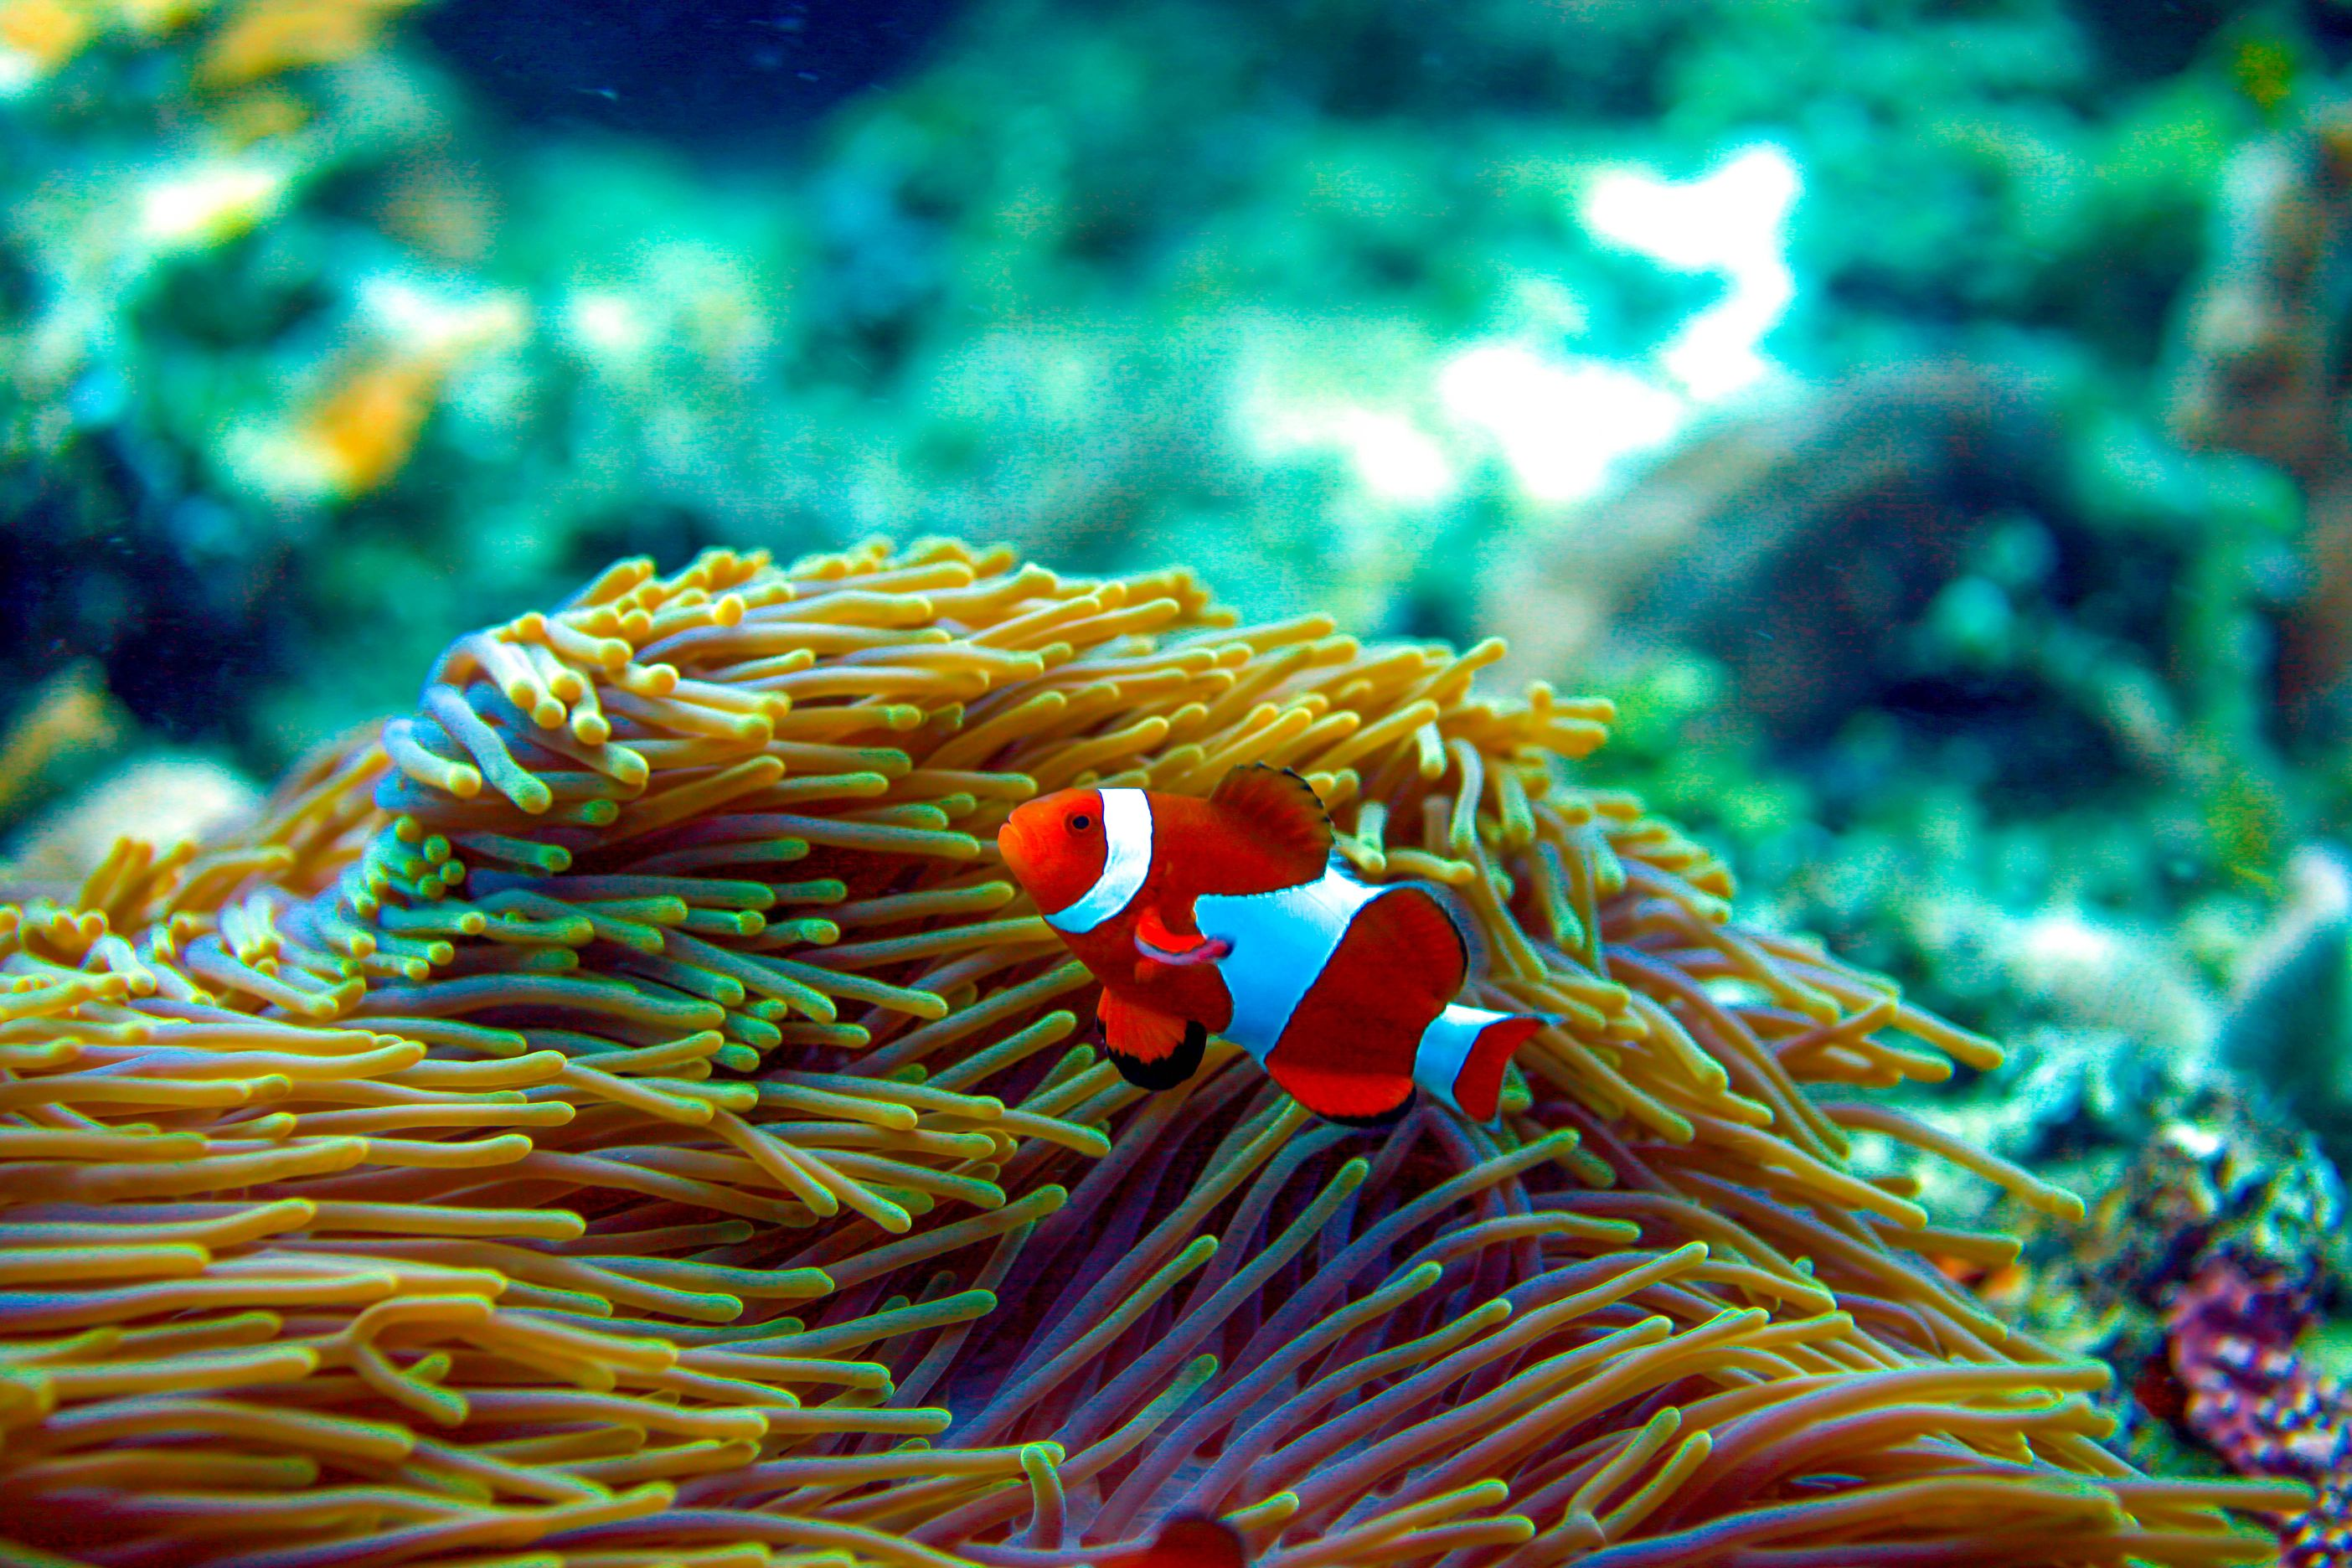 Clownfish and its sea anemone in Philippine waters